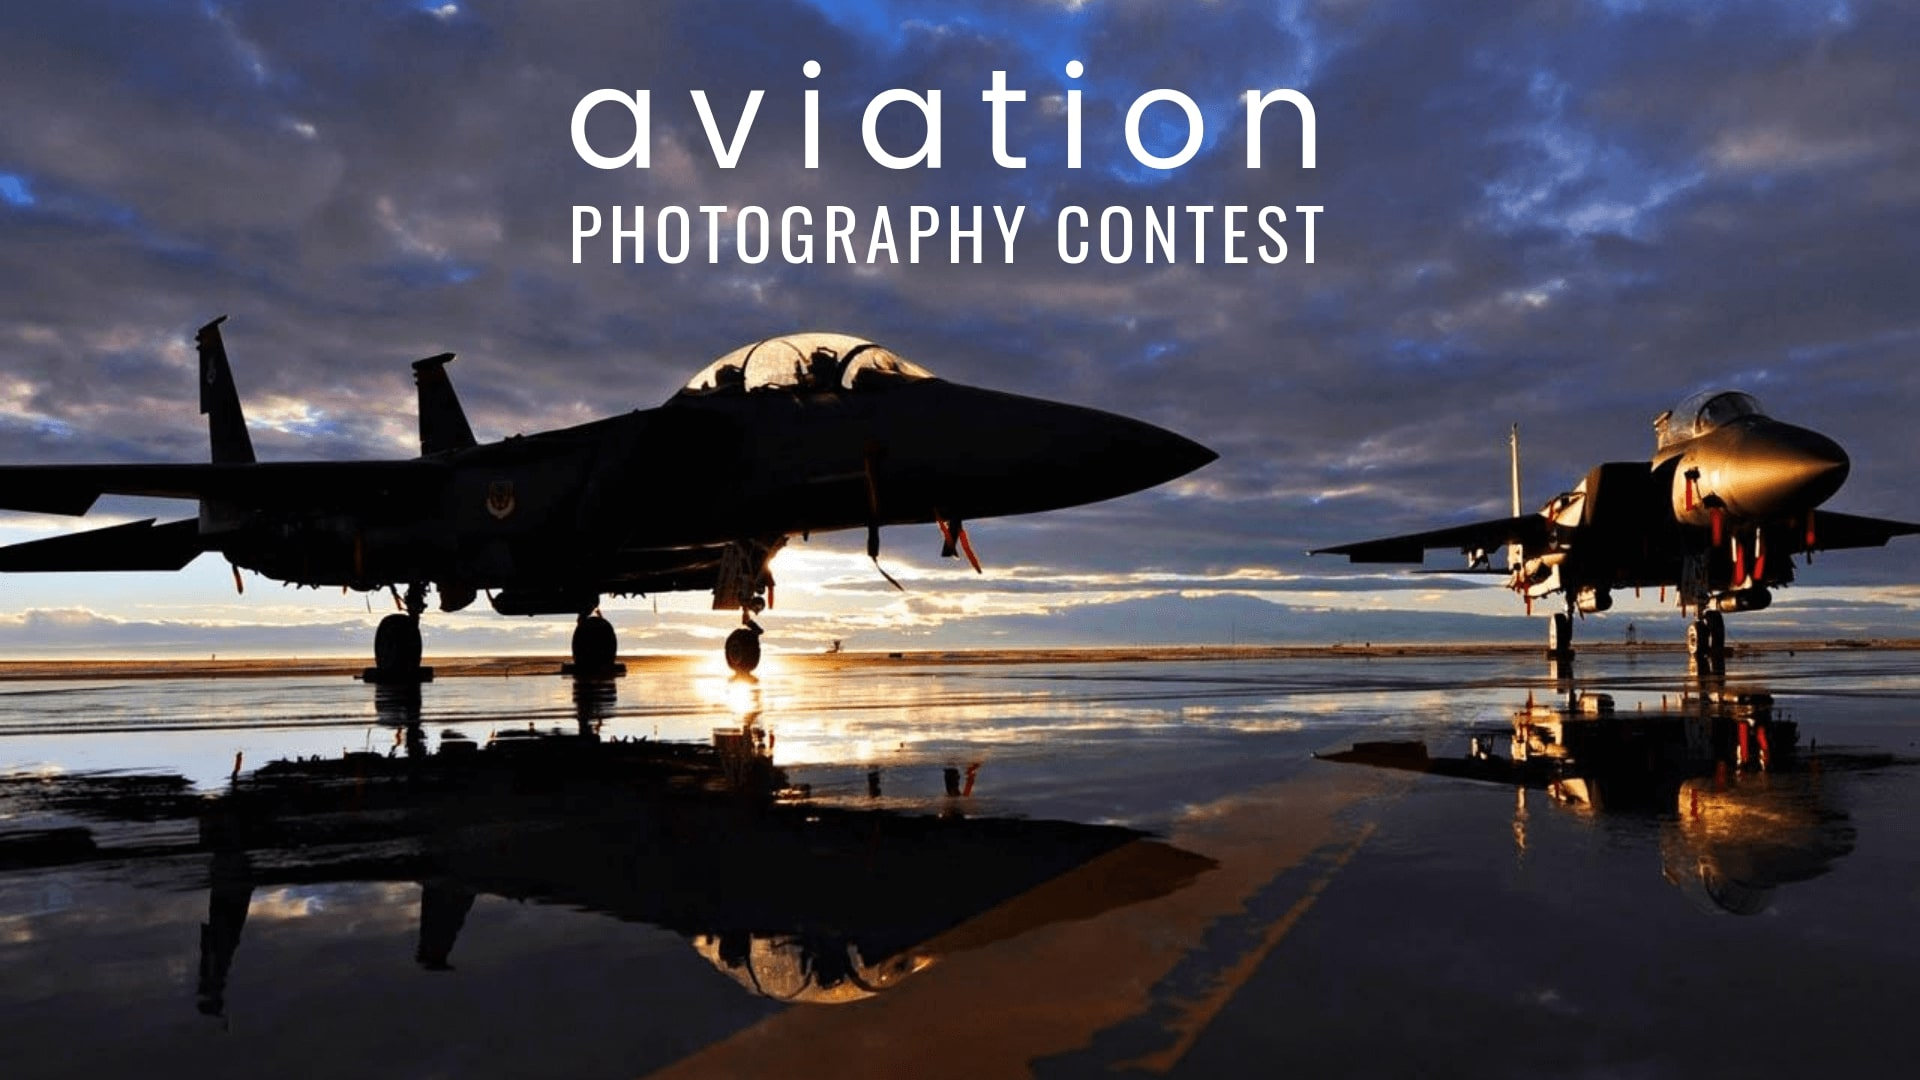 Aviation Photography Contest by chiiz